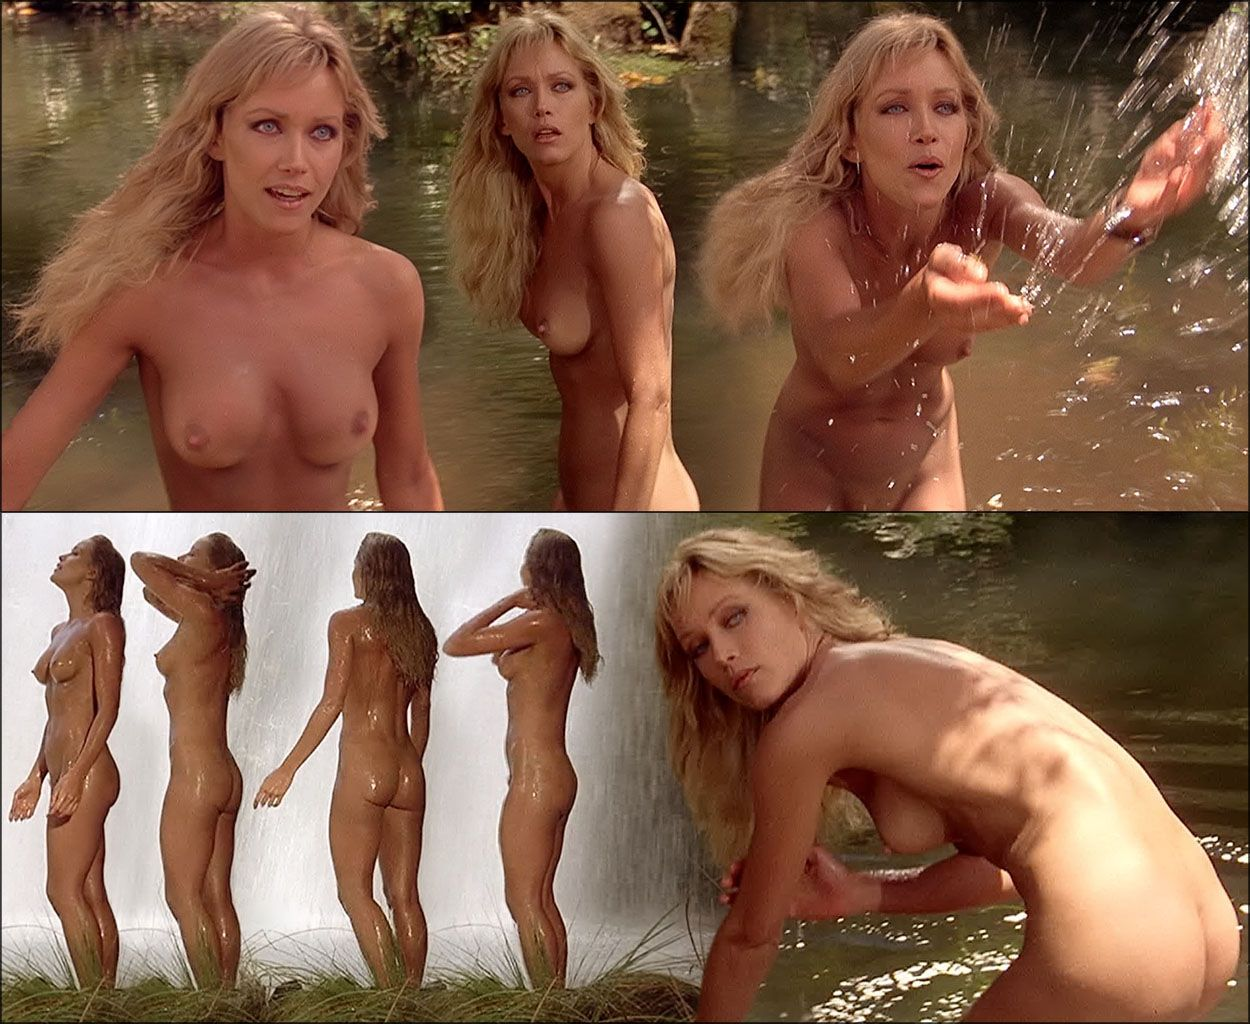 from Princeton hottest nude female from a james bond movie